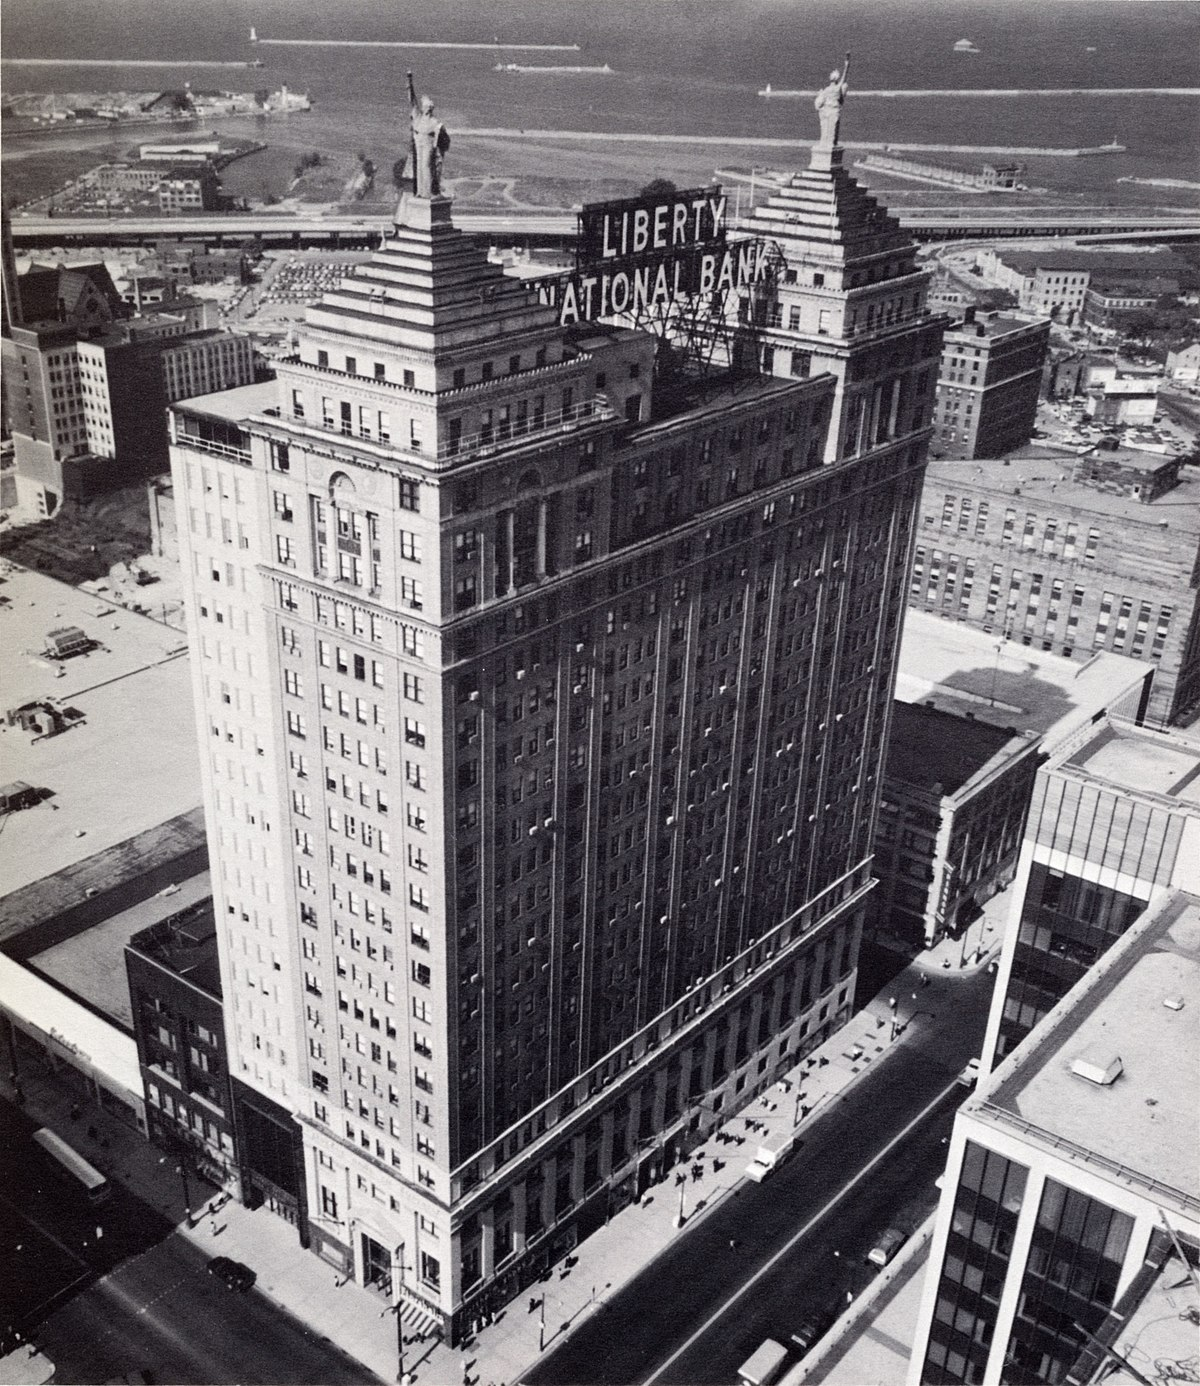 Main Building Group Pictures: Liberty Building (Buffalo, New York)